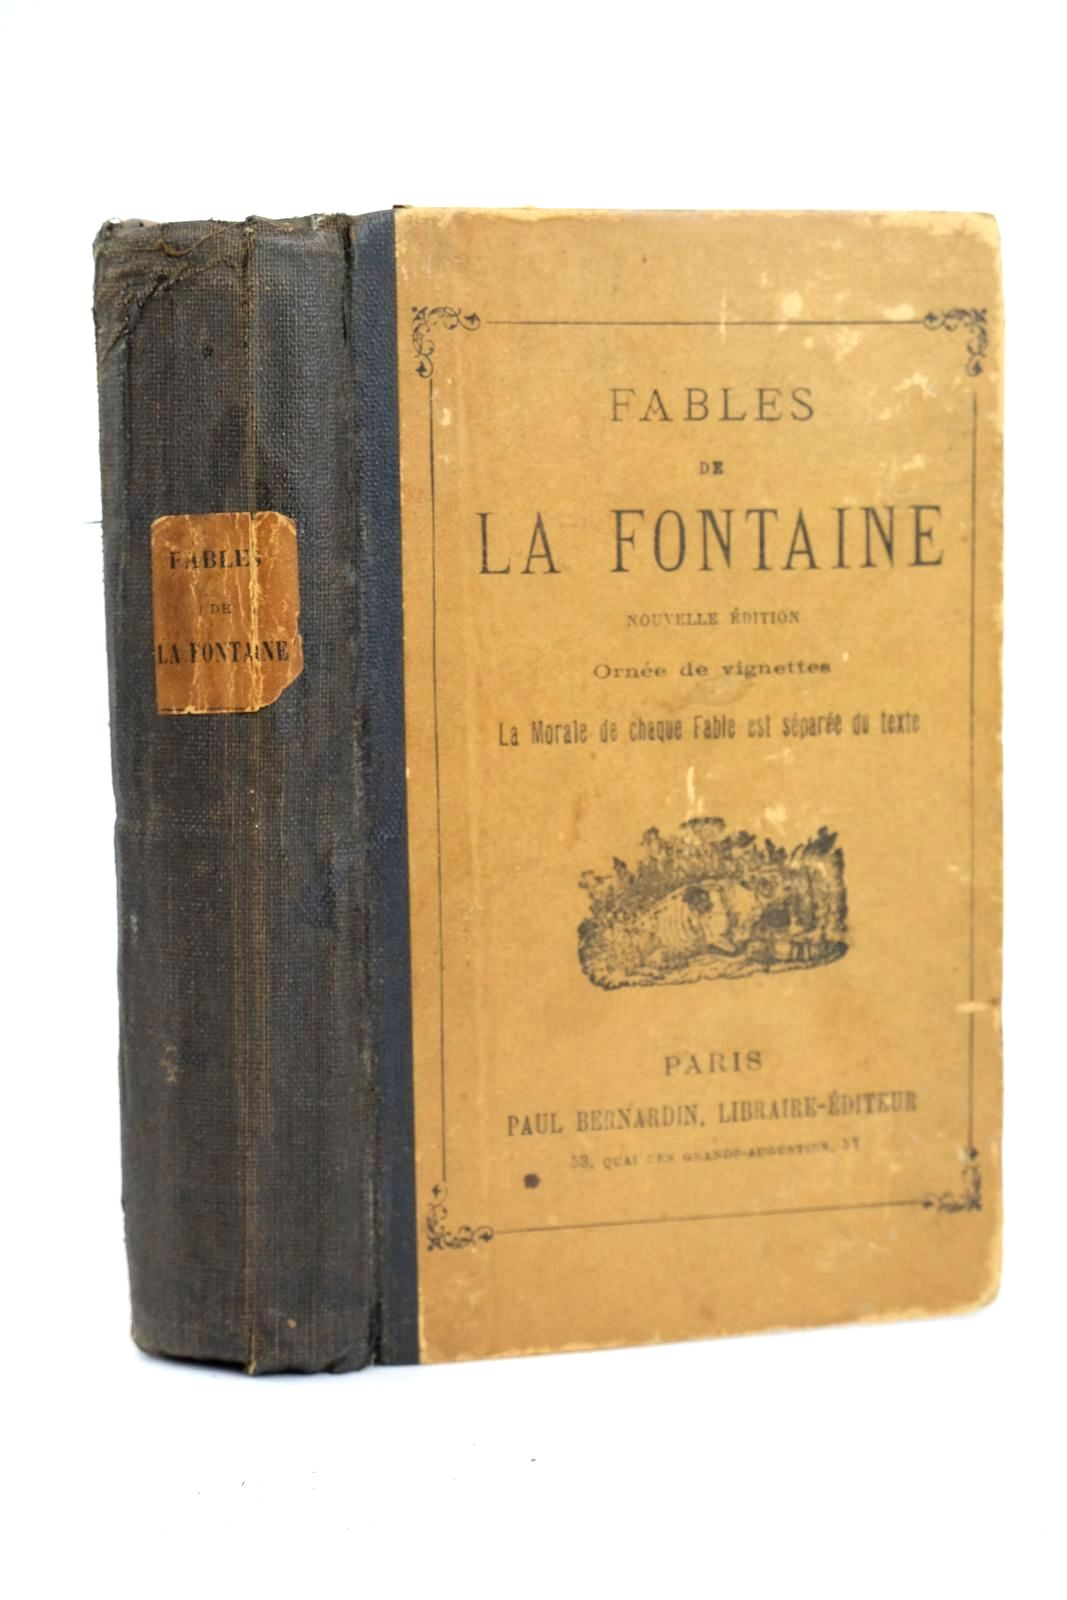 Photo of FABLES DE LA FONTAINE written by La Fontaine, Jean De published by Paul Bernardin (STOCK CODE: 1318825)  for sale by Stella & Rose's Books